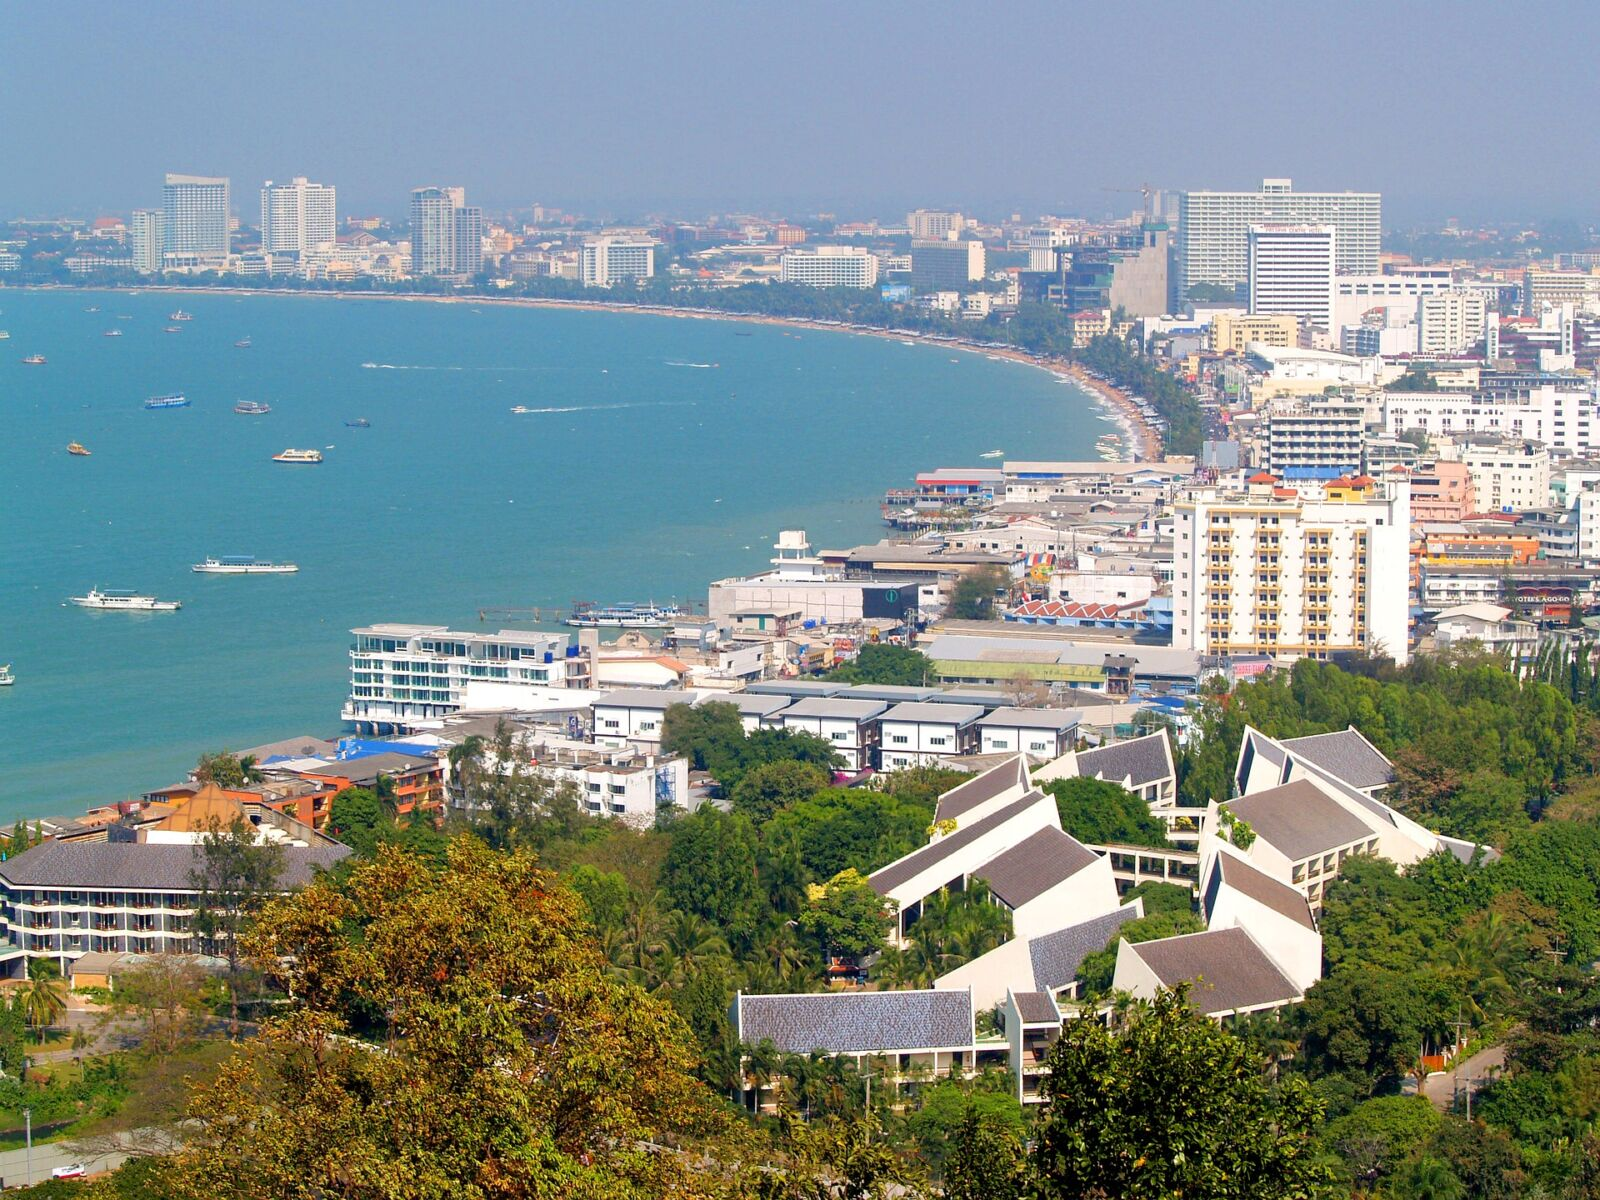 Pattaya. Image by 41330 from Pixabay